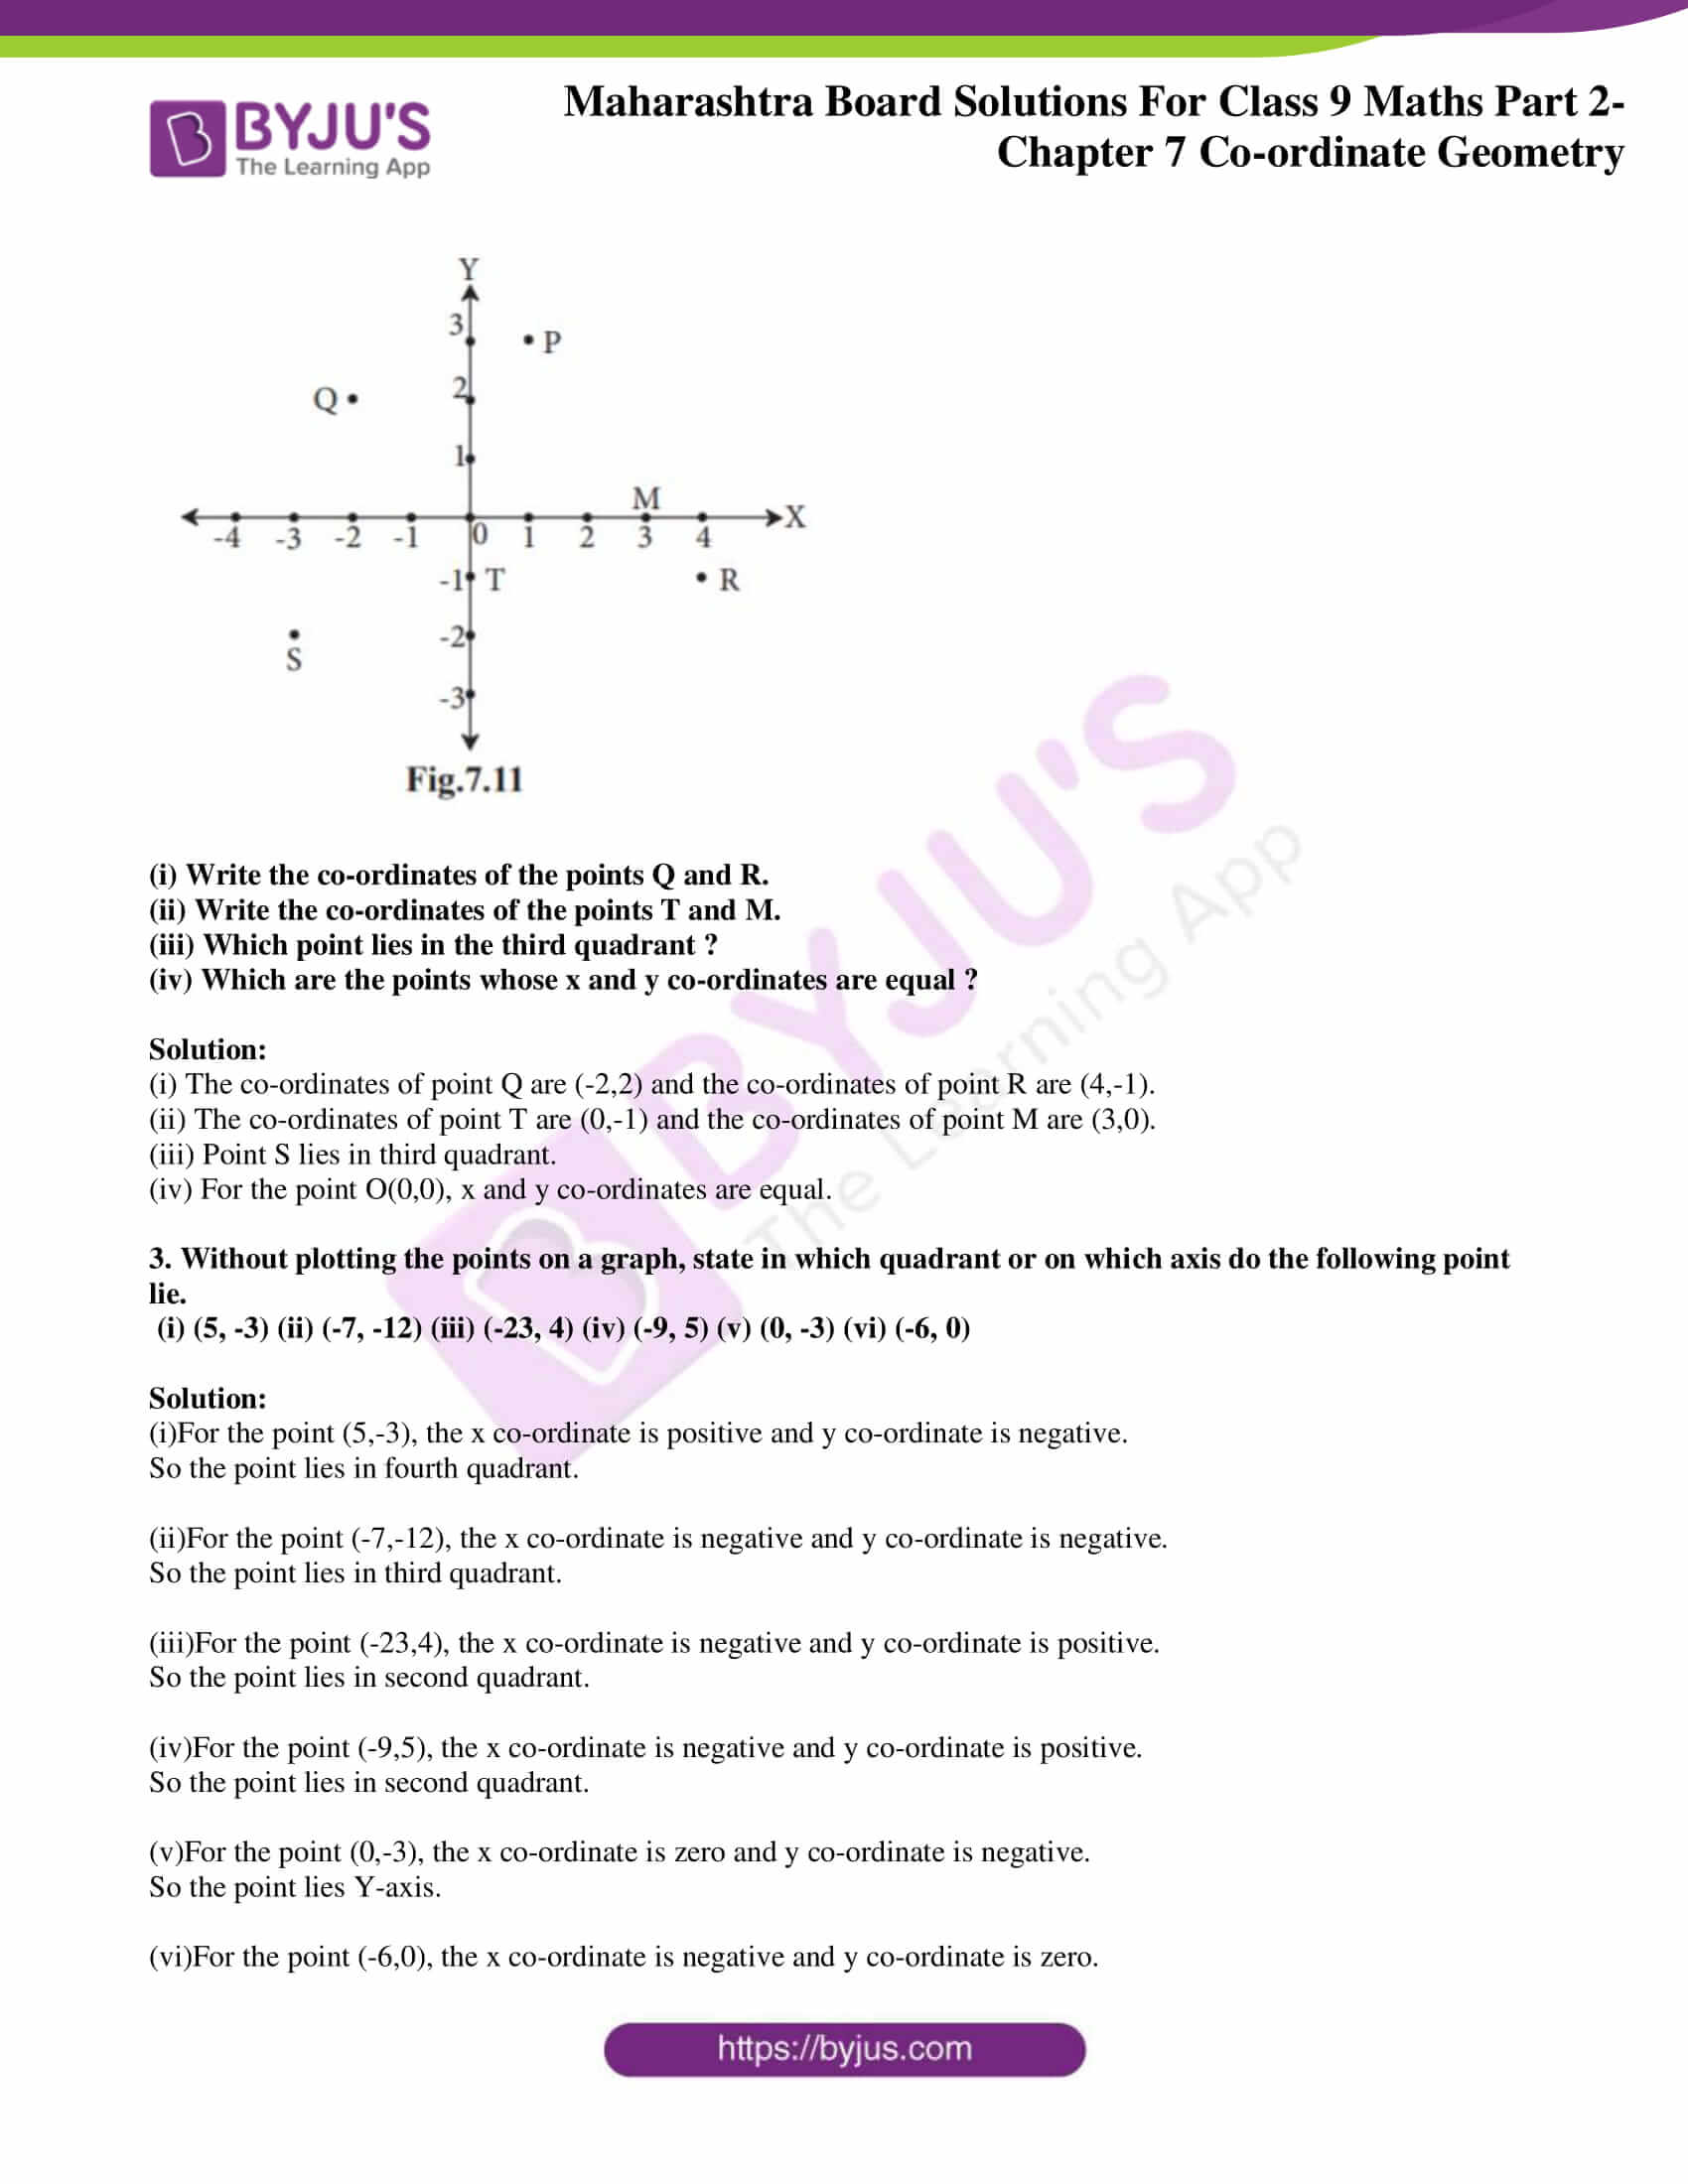 msbshse solutions for class 9 maths part 2 chapter 7 11